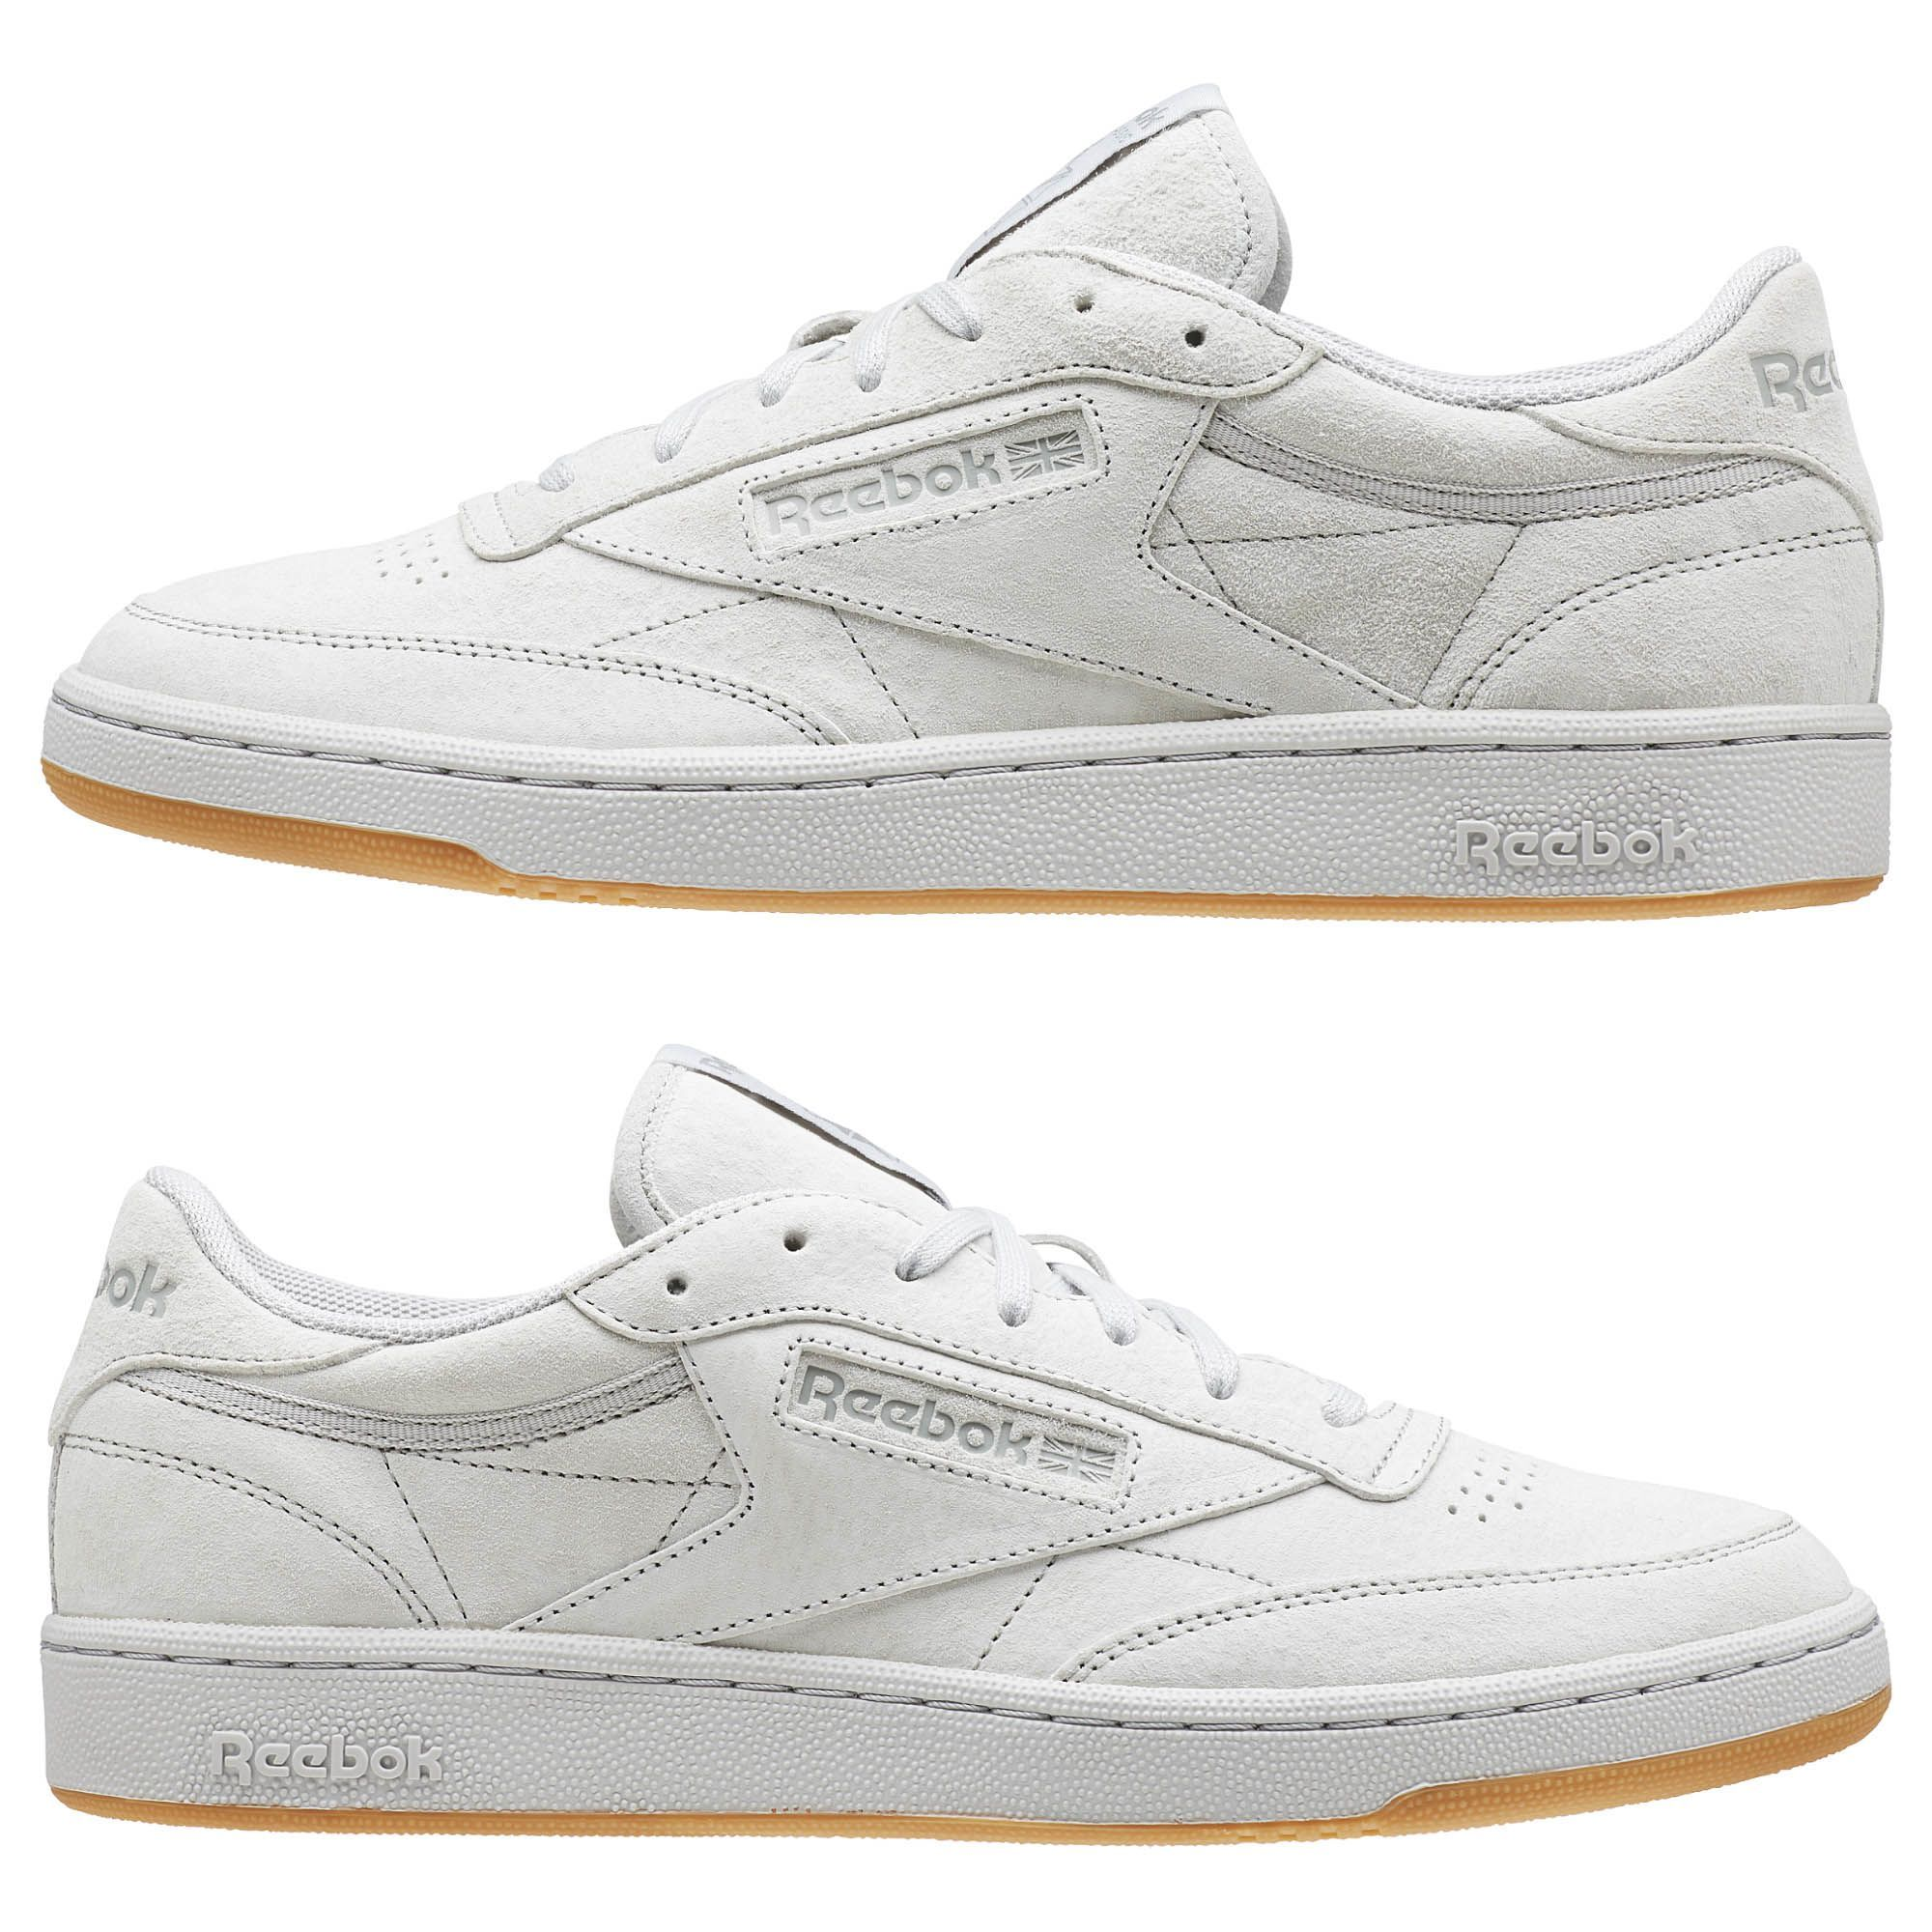 Reebok Club C 85 Tg Steel Carbon Gum Bd1886 Chaussure Chaussures Converse Collection De Chaussures